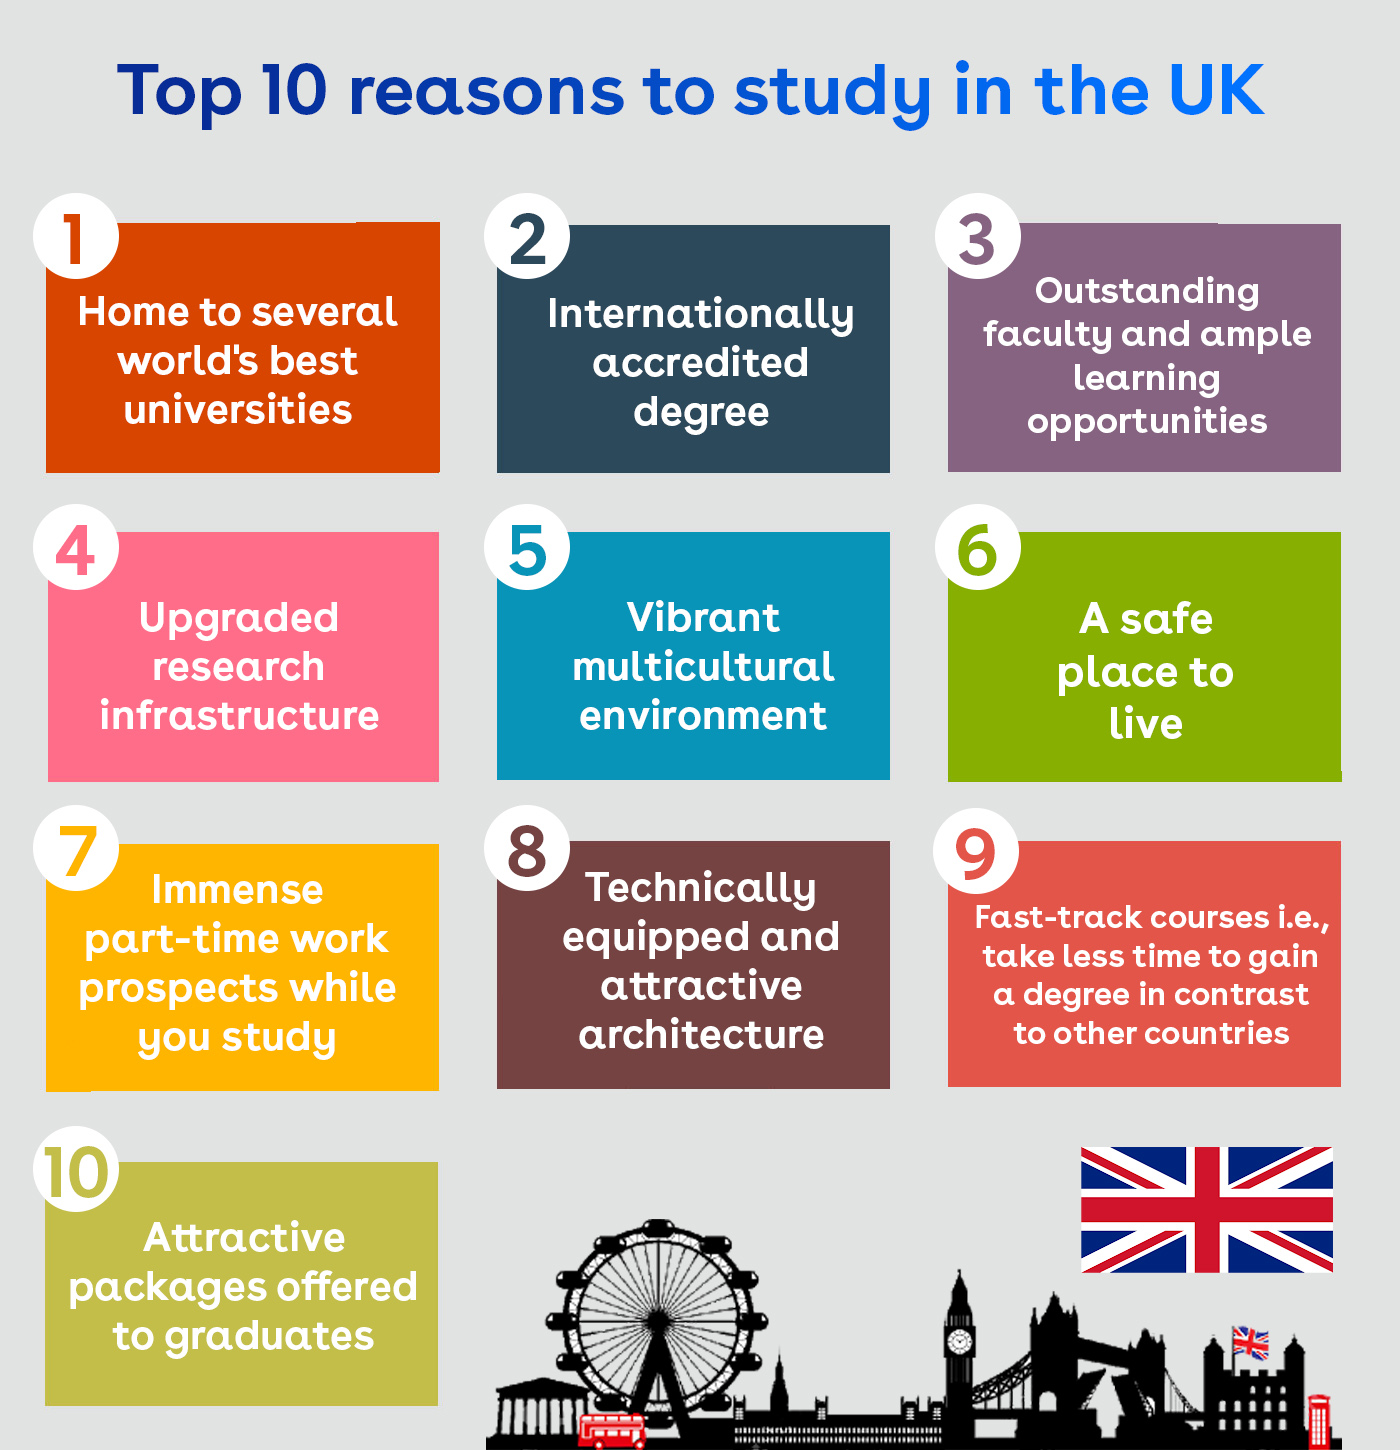 Top reasons to study in the UK